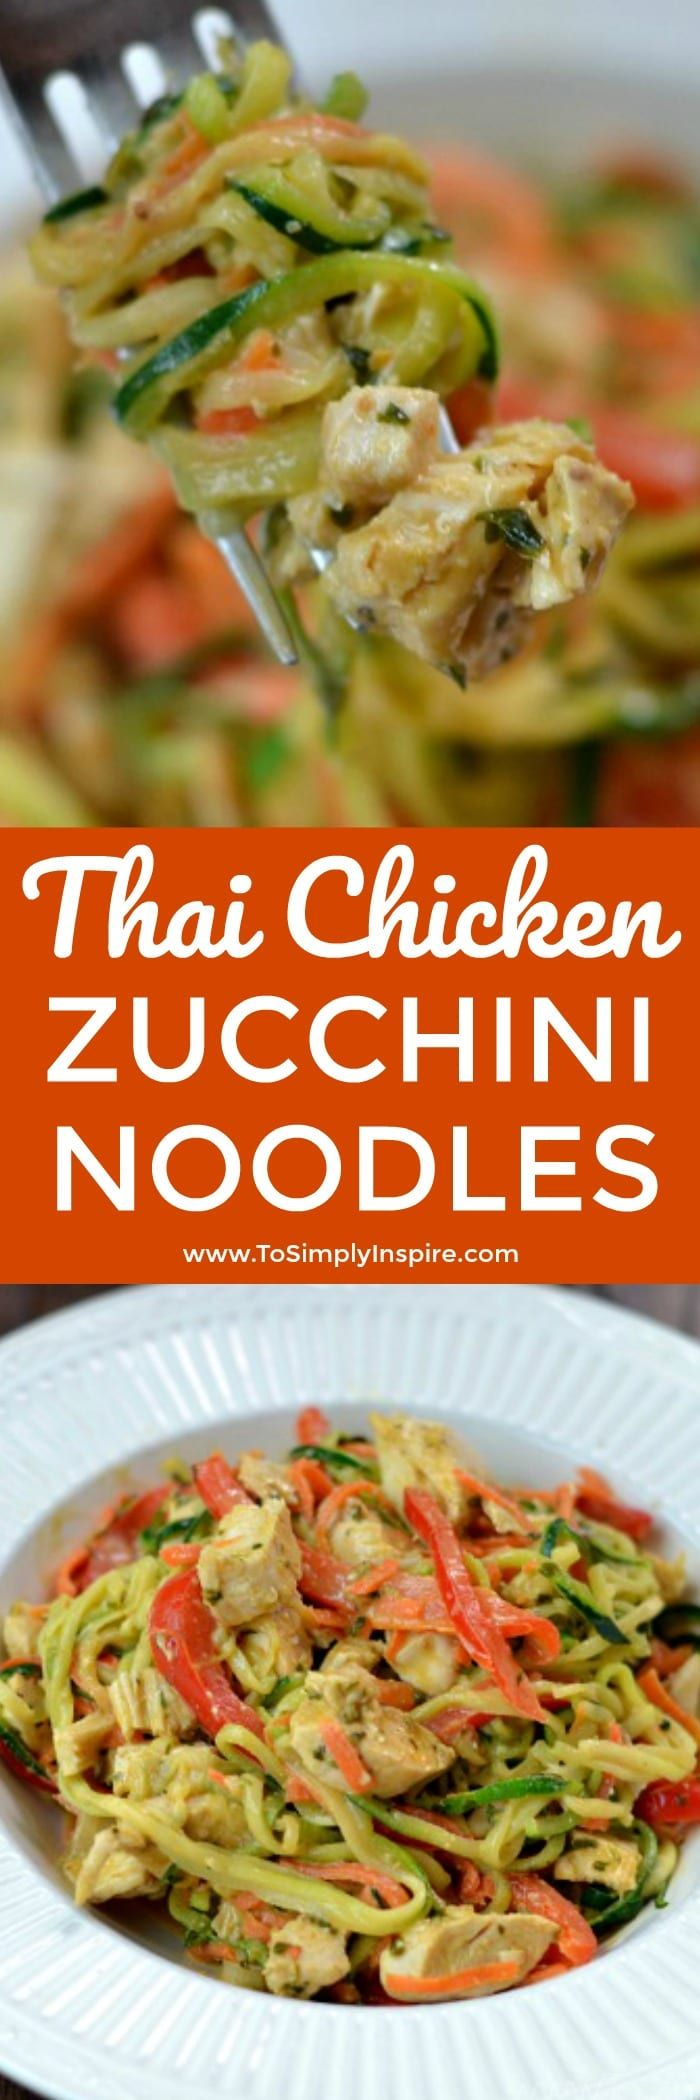 Thai Chicken Zucchini Noodles with Spicy Peanut Sauce recipe is the ultimate healthy meal packed with unbelievable restaurant quality flavors.  Made with simple ingredients, you can have it ready to serve in less than 20 minutes.